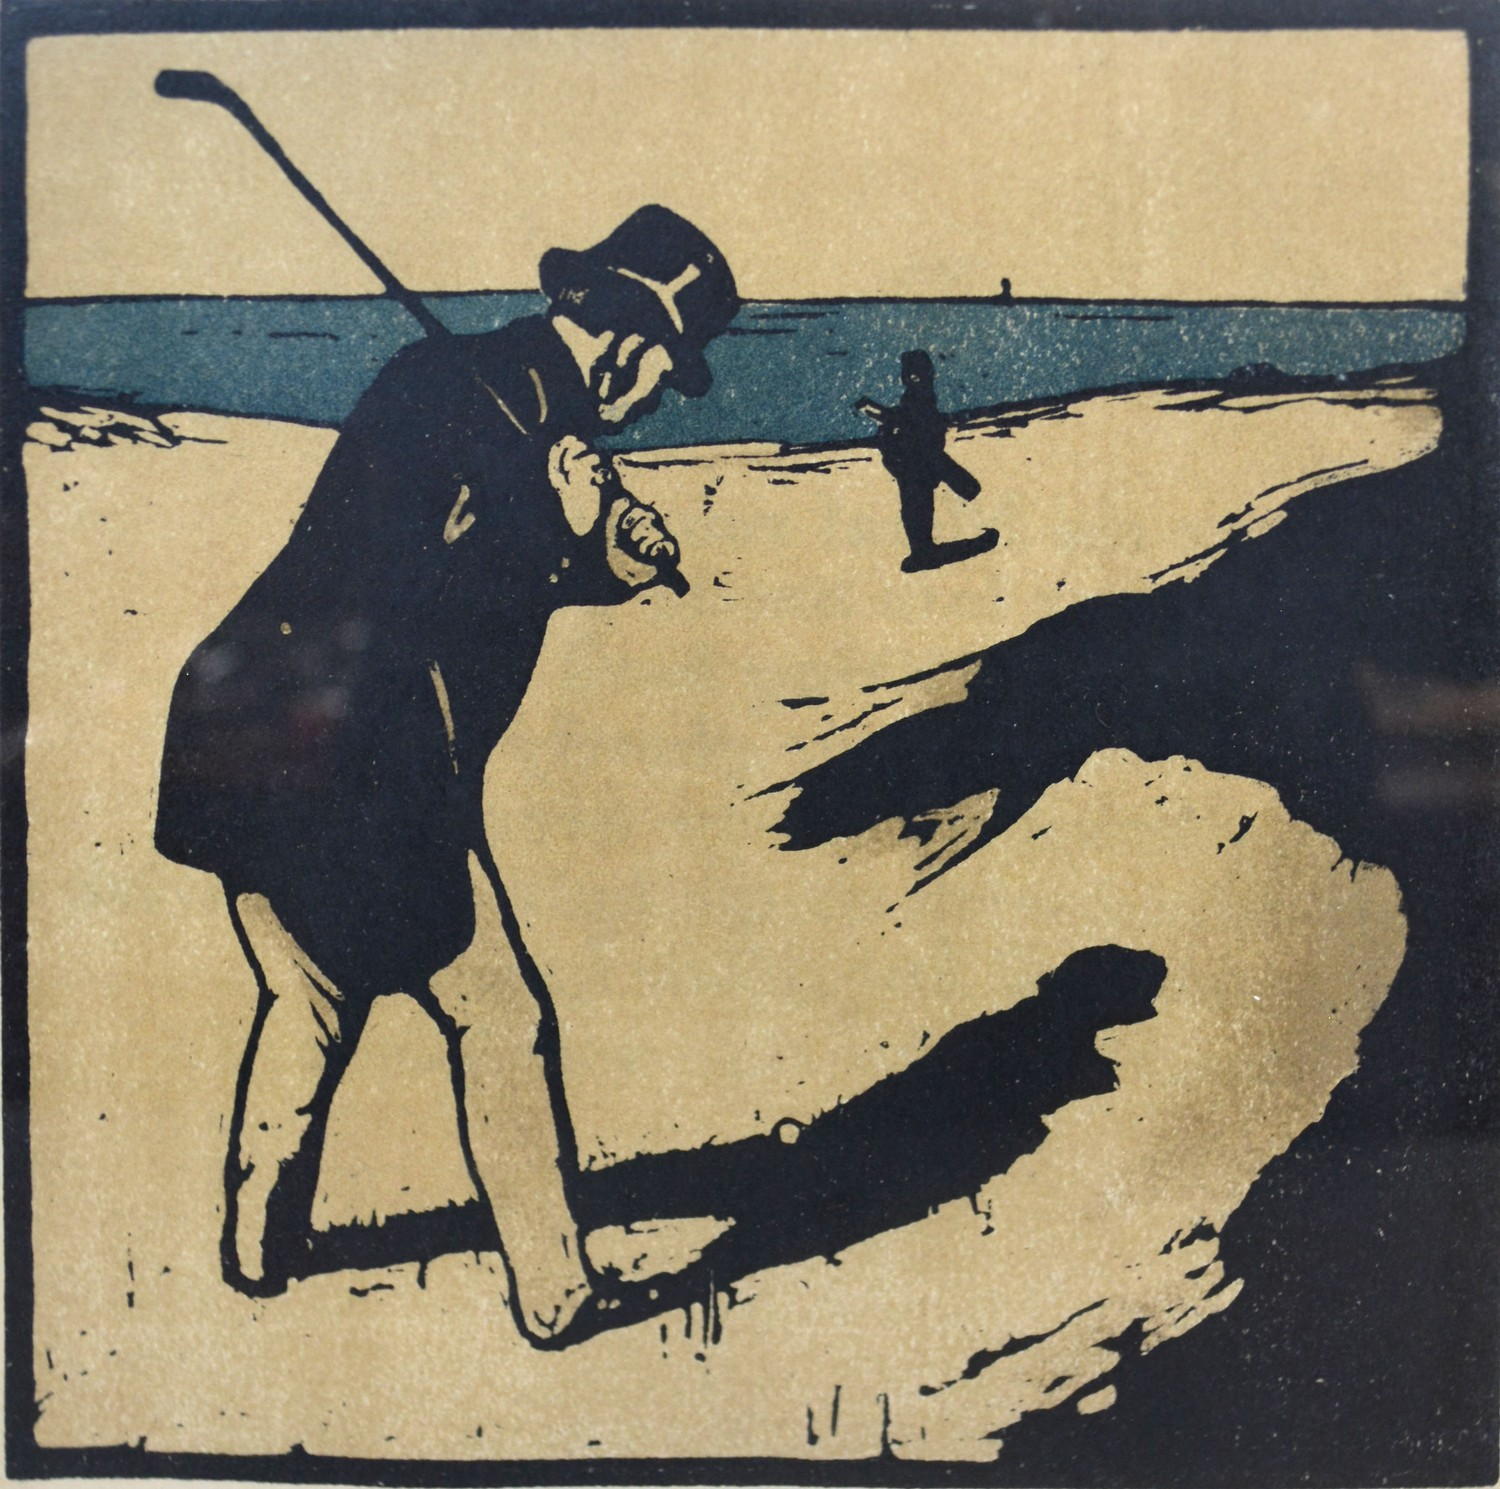 Sir William Nicholson A Group of Three Lithographs from The Almanac of Twelve Sports to include Golf - Image 4 of 4